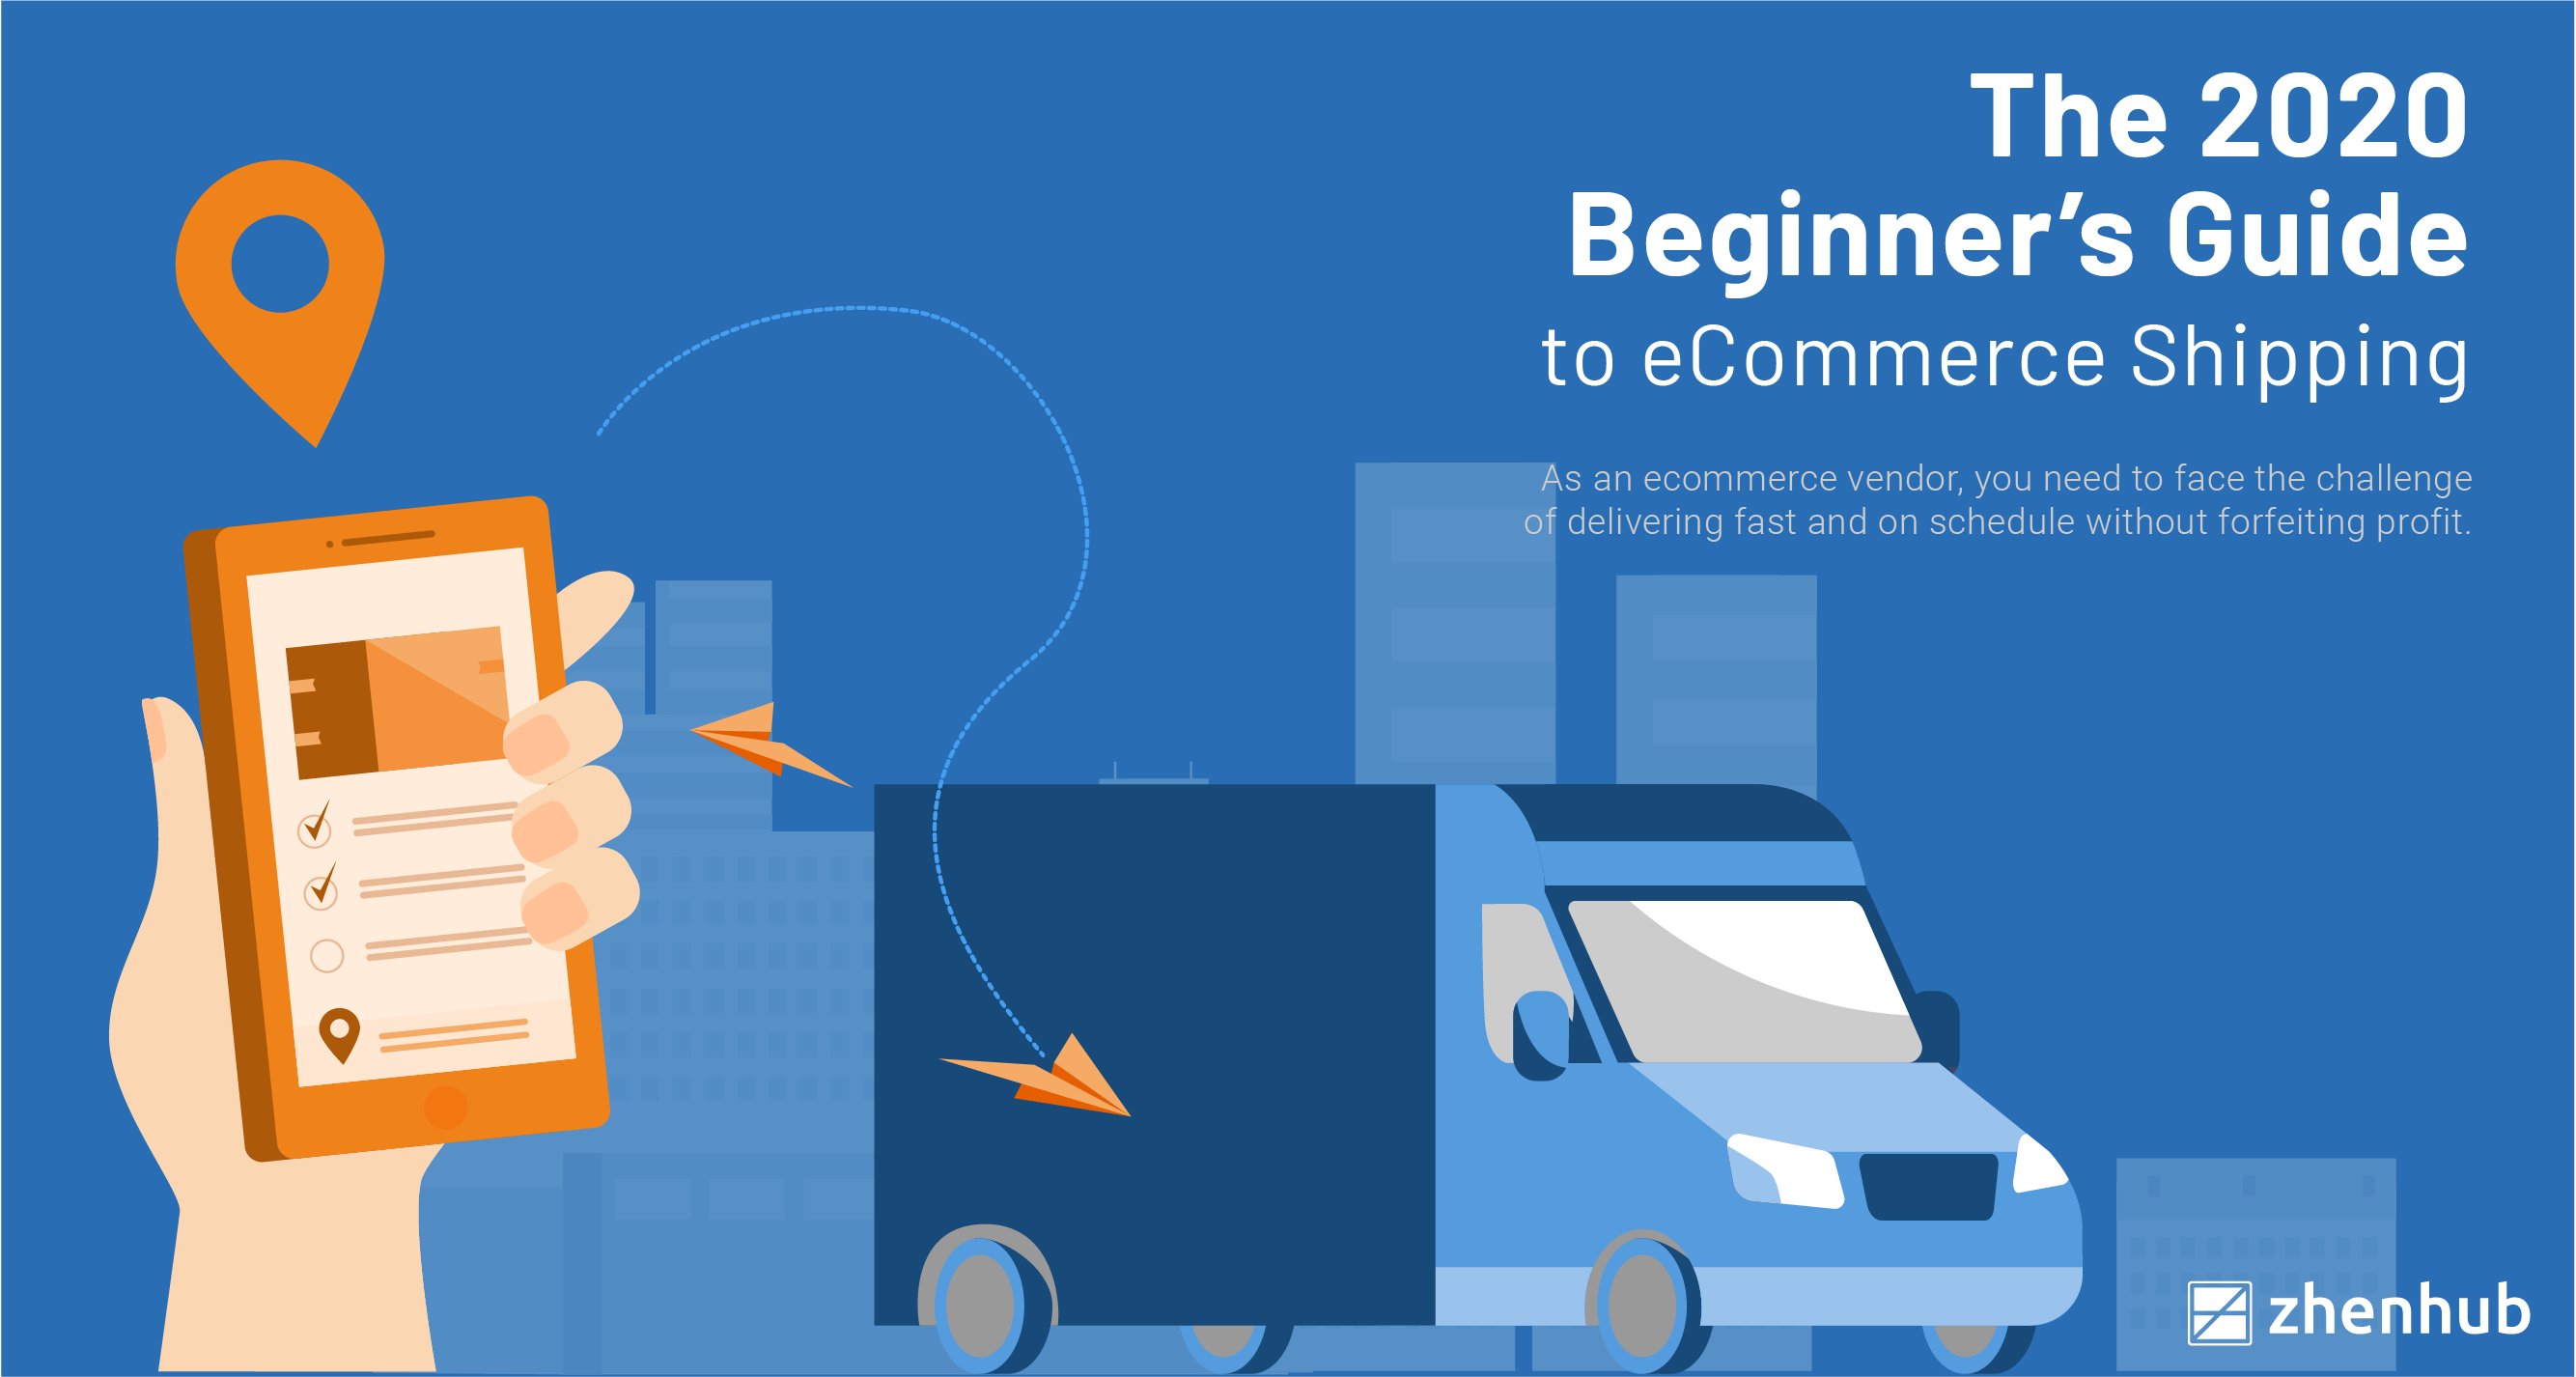 2020-beginners-guide-to-ecommerce-shipping